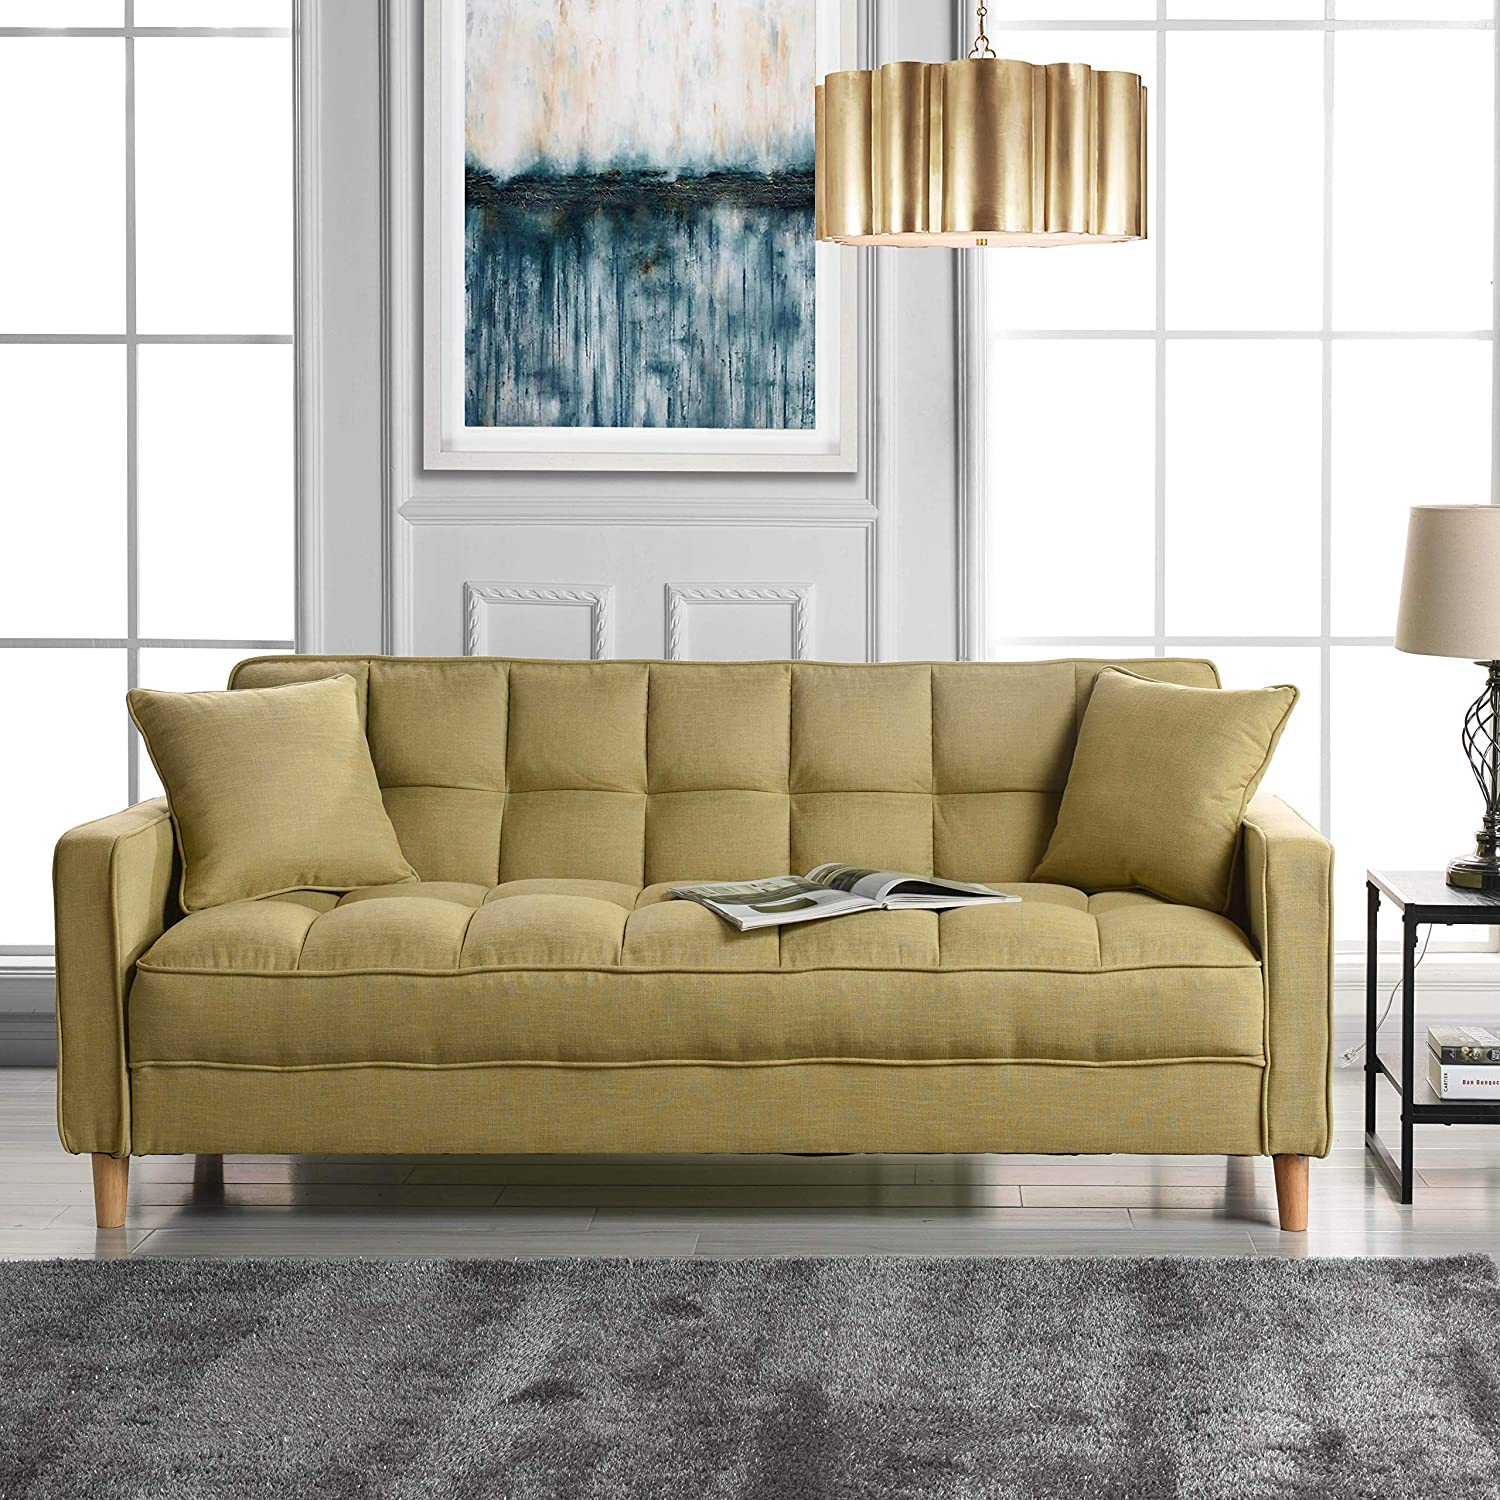 Modern Linen Fabric Tufted Small Space Living Room Sofa Couch (Yellow)